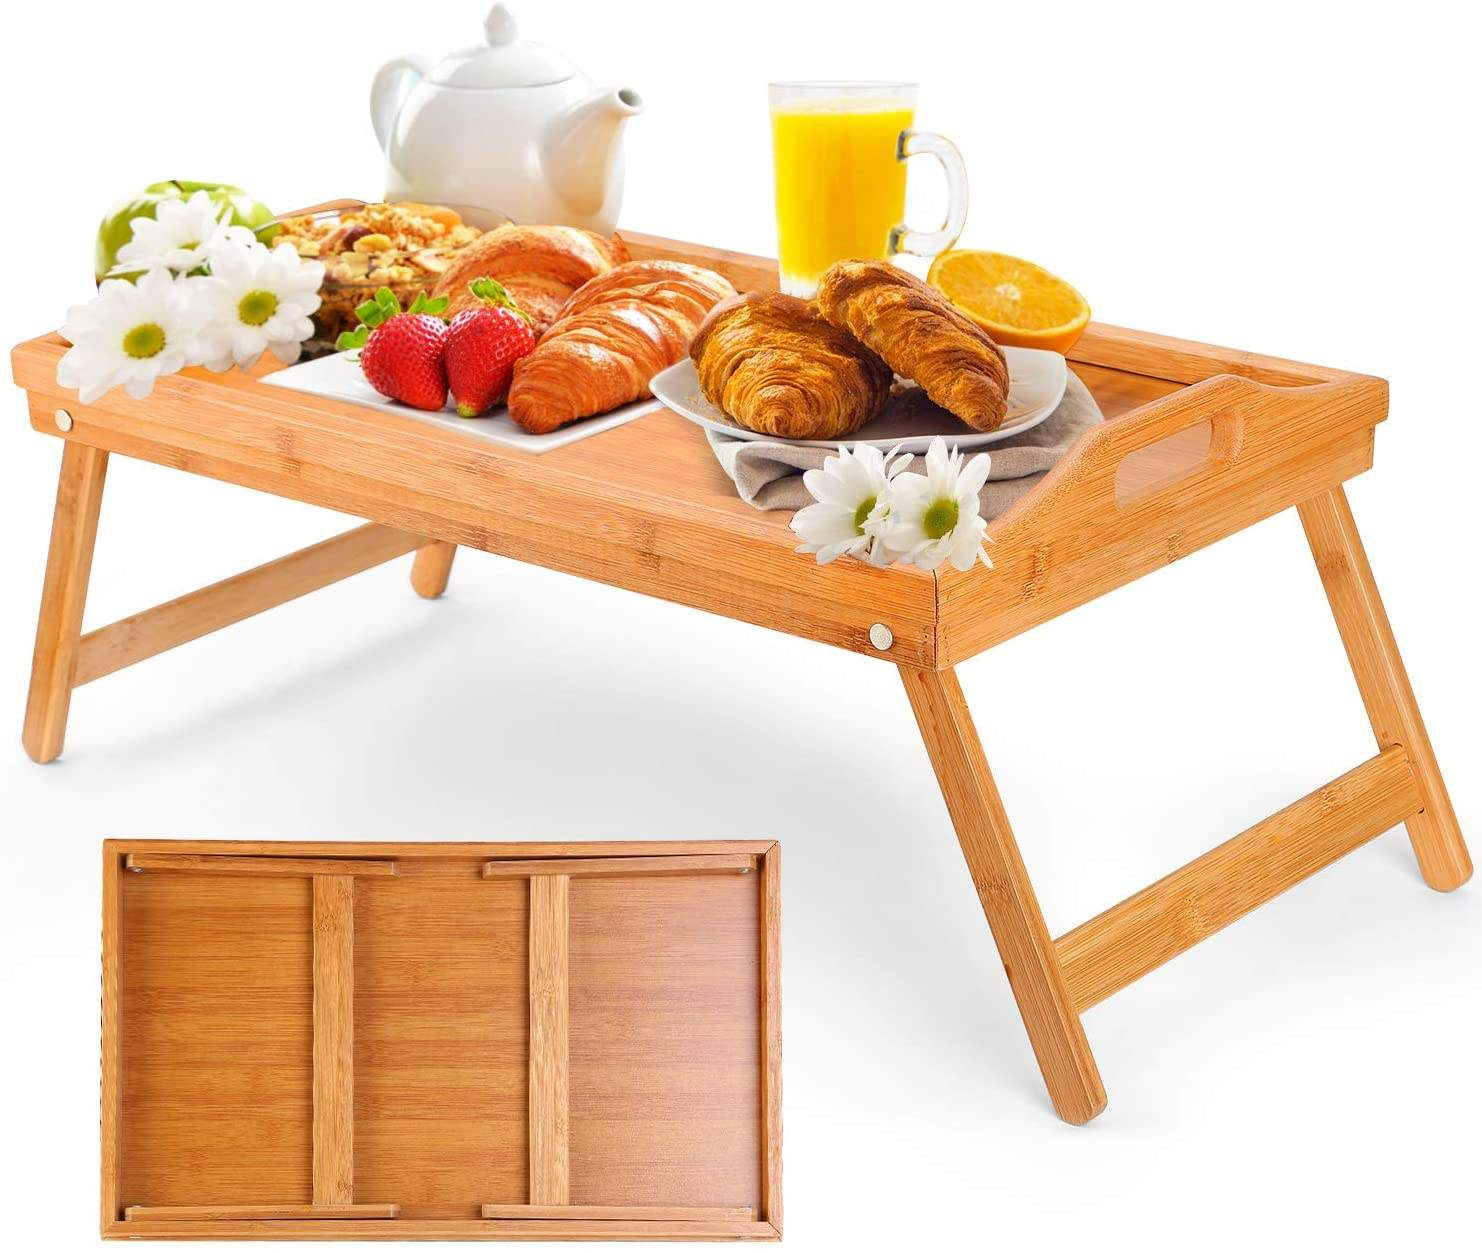 Lap Desk Bed Tray Bamboo Handles Foldable Breakfast Serving Tray Adjustable Legs Laptop Stand Natural